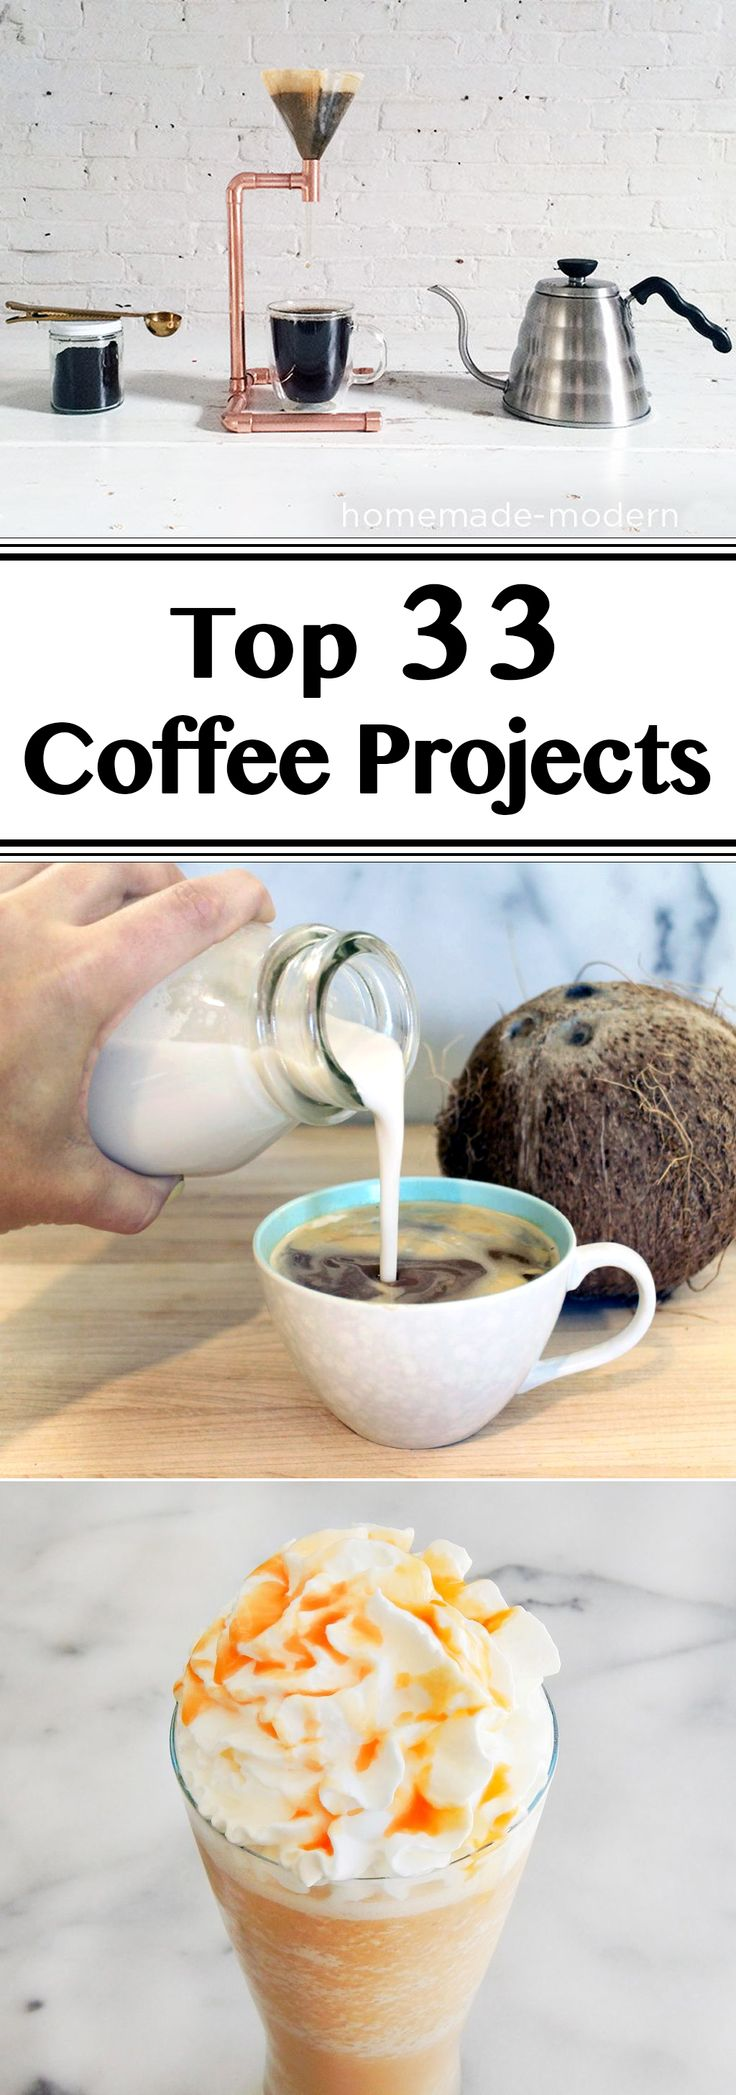 There sure are a lot of coffee lovers out there. So for all you caffeine fiends, here's a collection of the best coffee projects on Instructables.